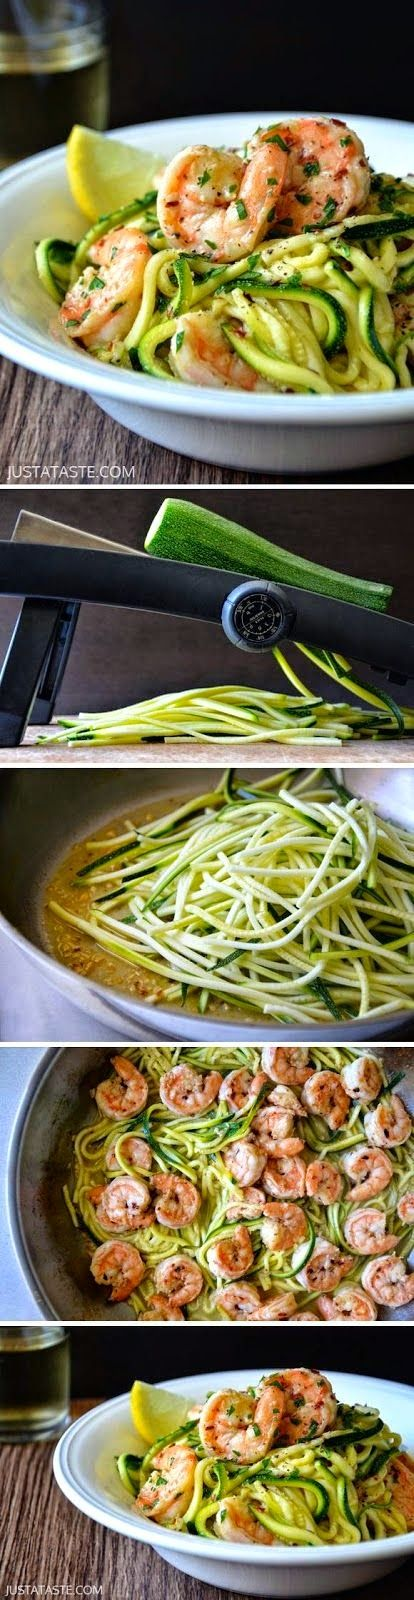 all-food-drink: Shrimp Scampi with Zucchini Noodles